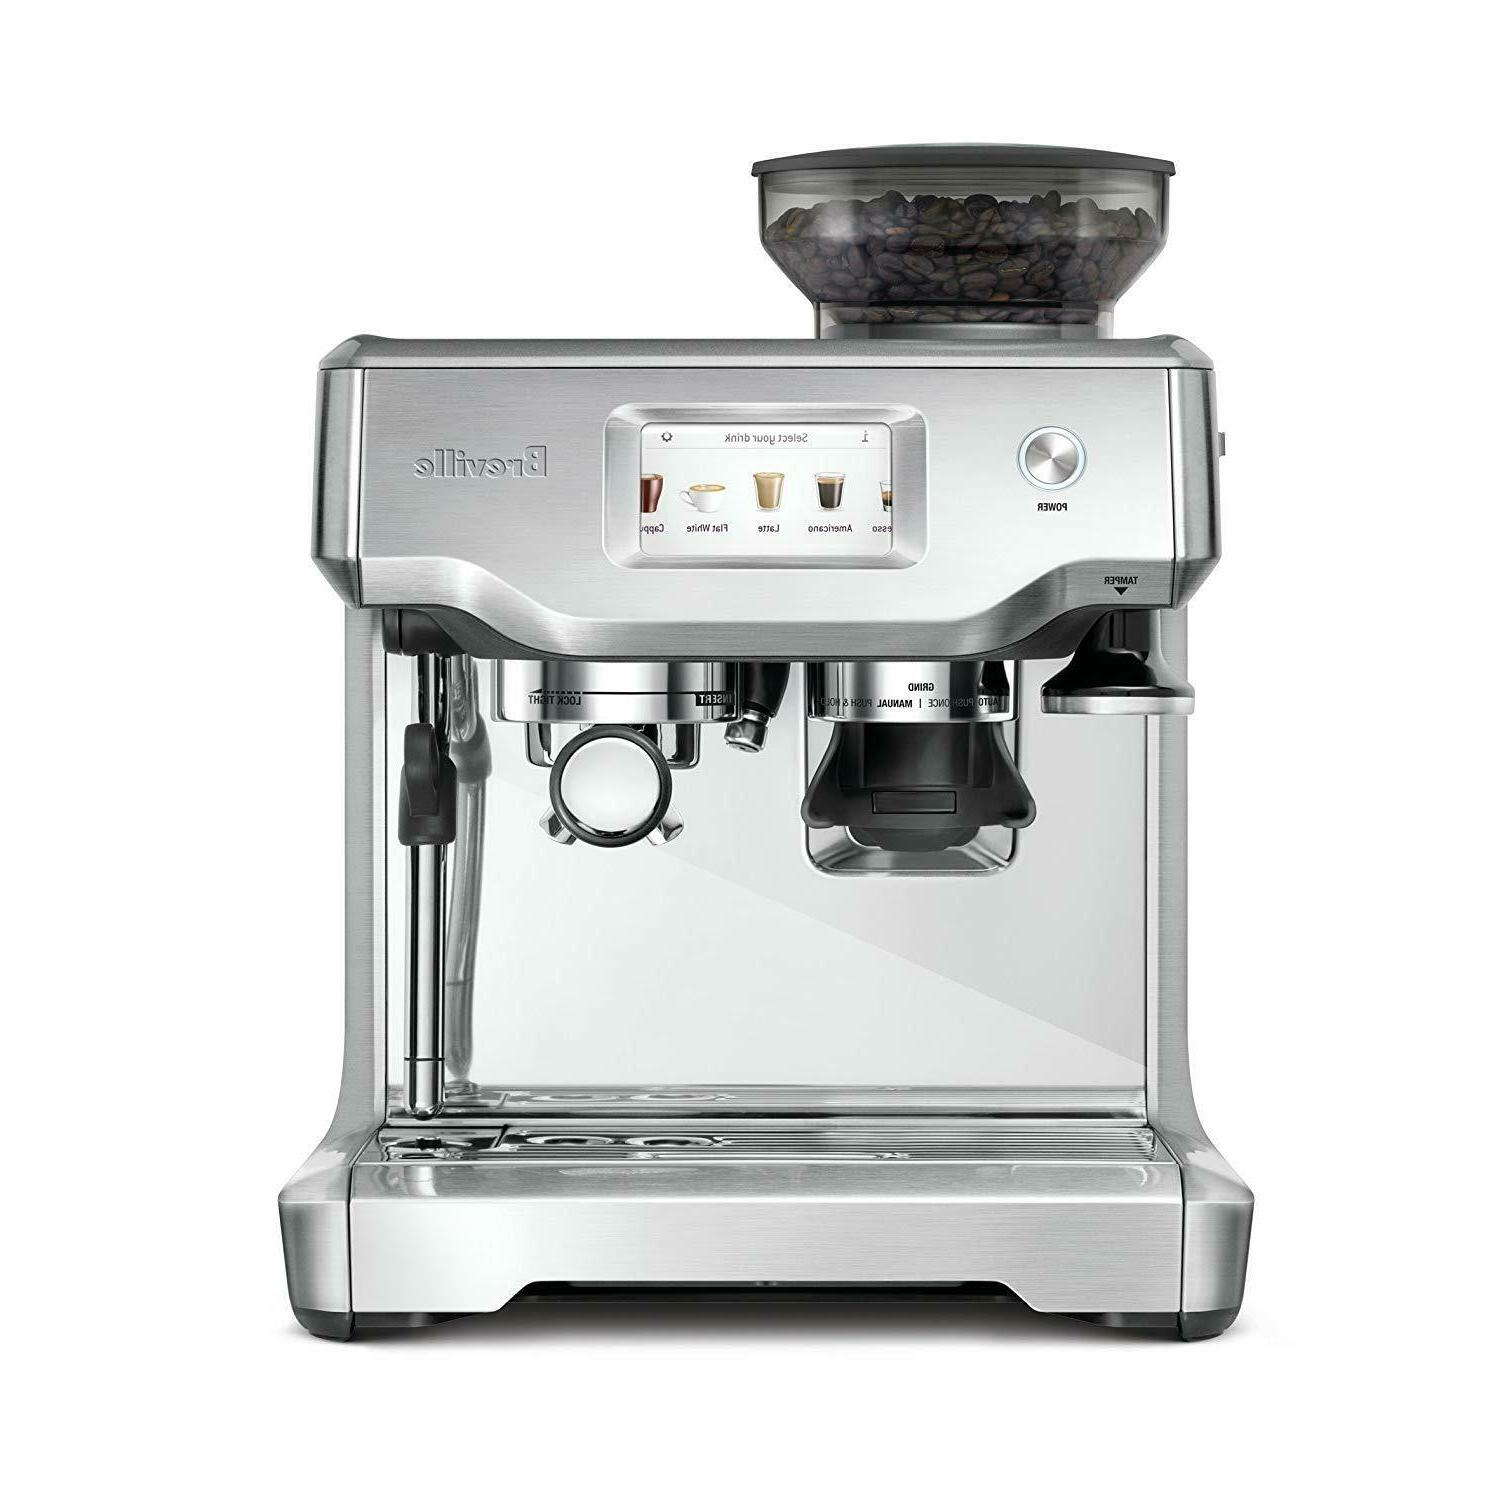 Breville Barista Touch Maker BES880BSS1BUS1 Stainless New Box